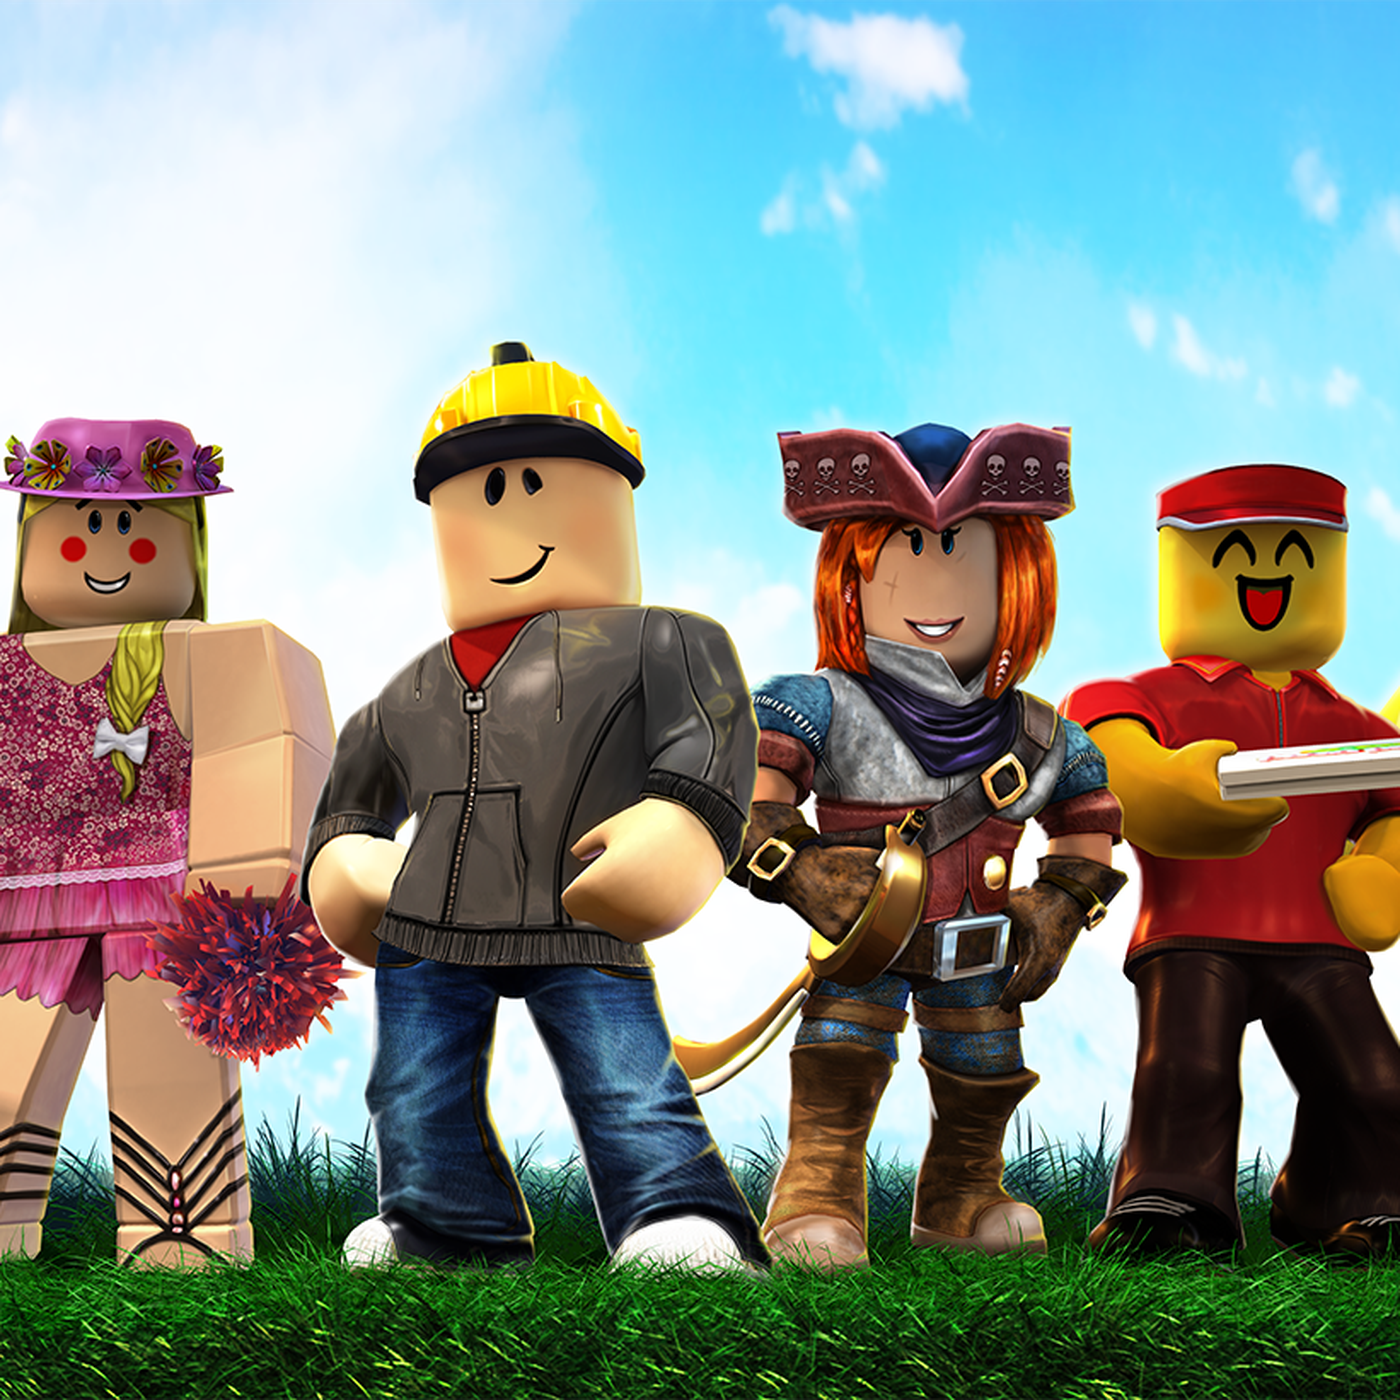 Gamers Of Roblox Home Facebook Roblox Surpasses Minecraft With 100 Million Monthly Players The Verge